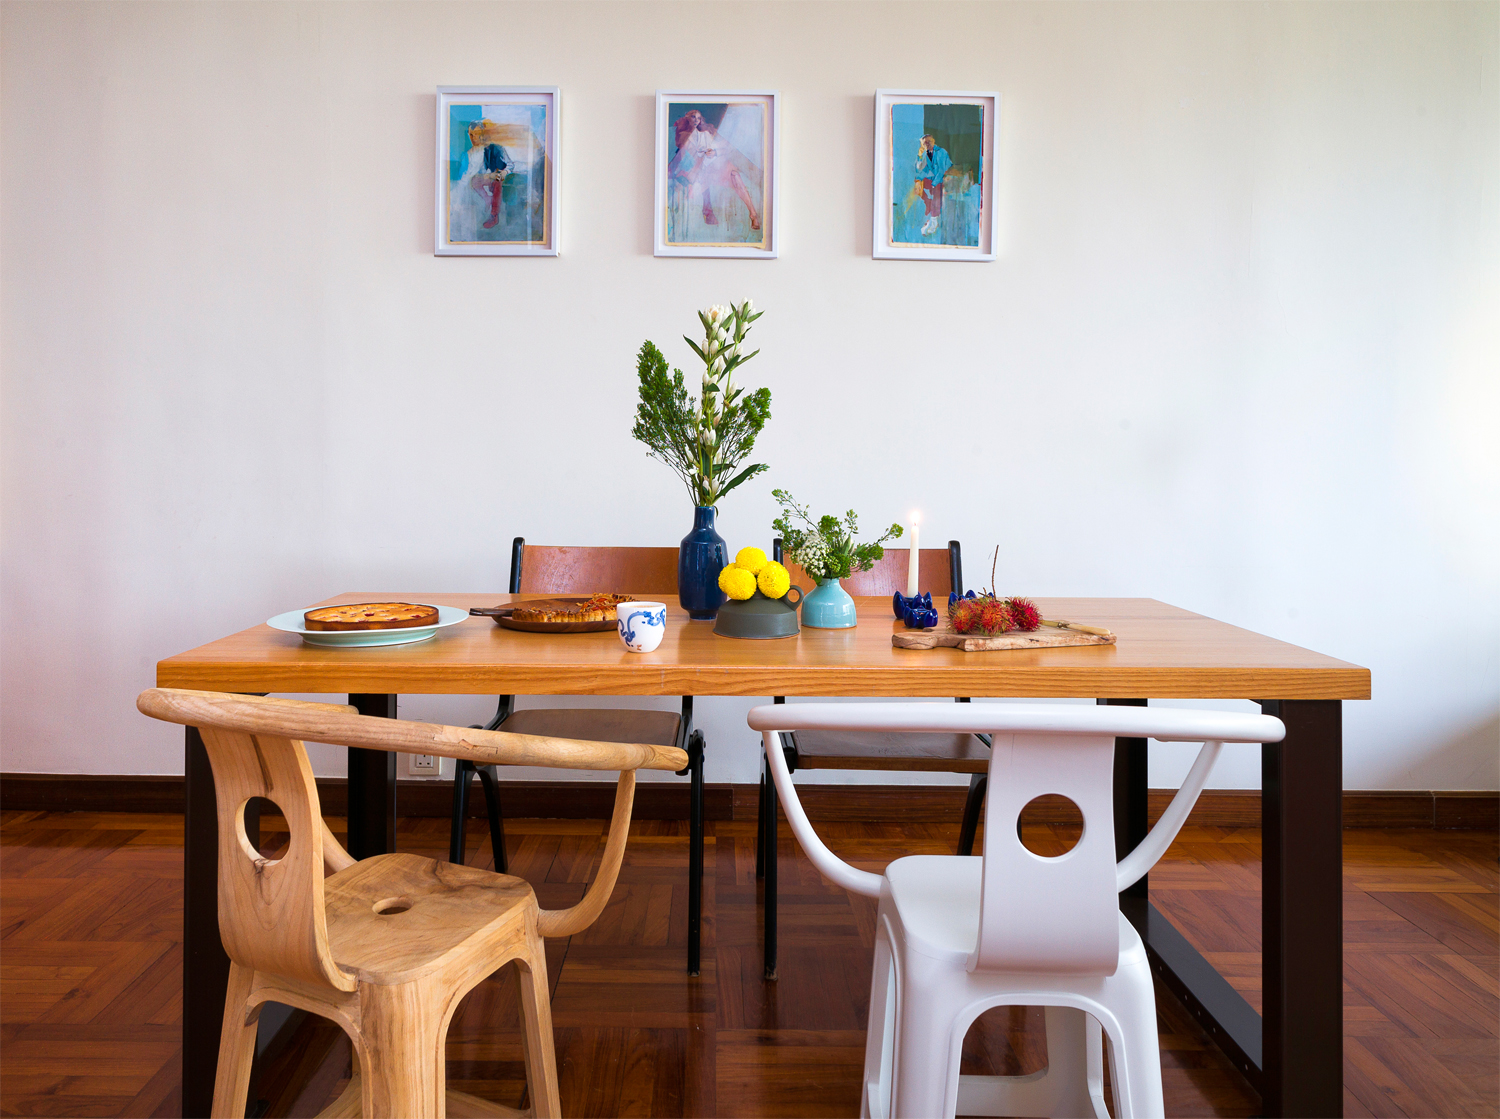 Dining Room The Table Is An Industrial Watchmakers Bench HK10000 From Swiss Brand Lista Distributed By Rainbow Asia Rainbowasiahk